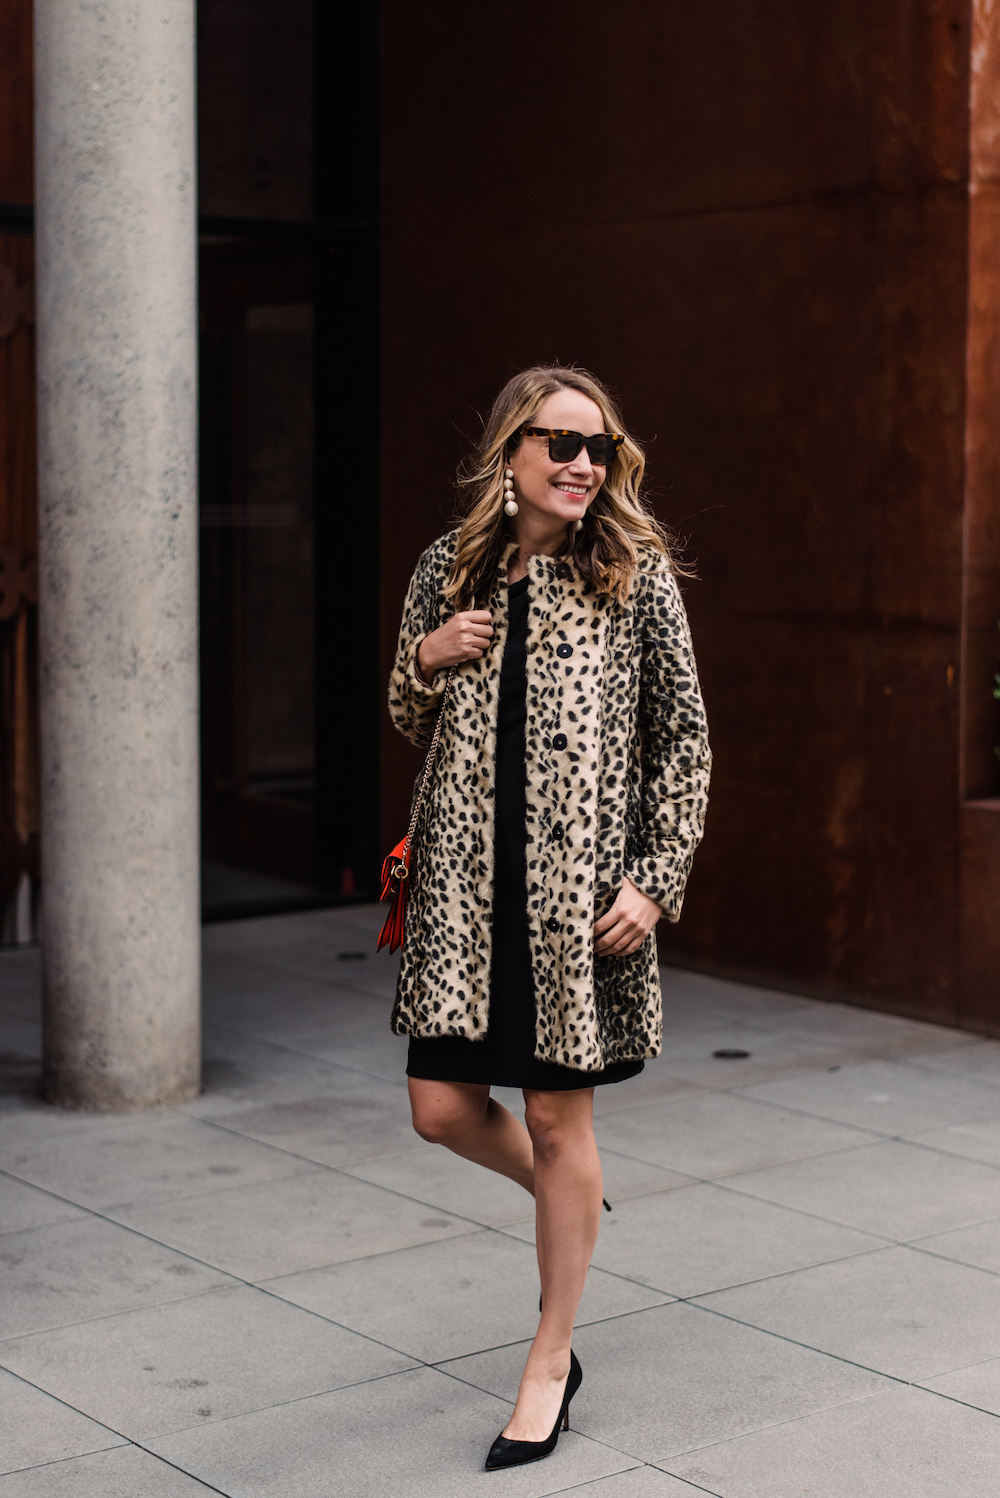 J.McLaughlin Leopard Faux Fur Pella Coat, By Malene Birger Dessa off-the-shoulder stretch-ponte dress | Grace Atwood, The Stripe - Holiday Party Outfit Idea